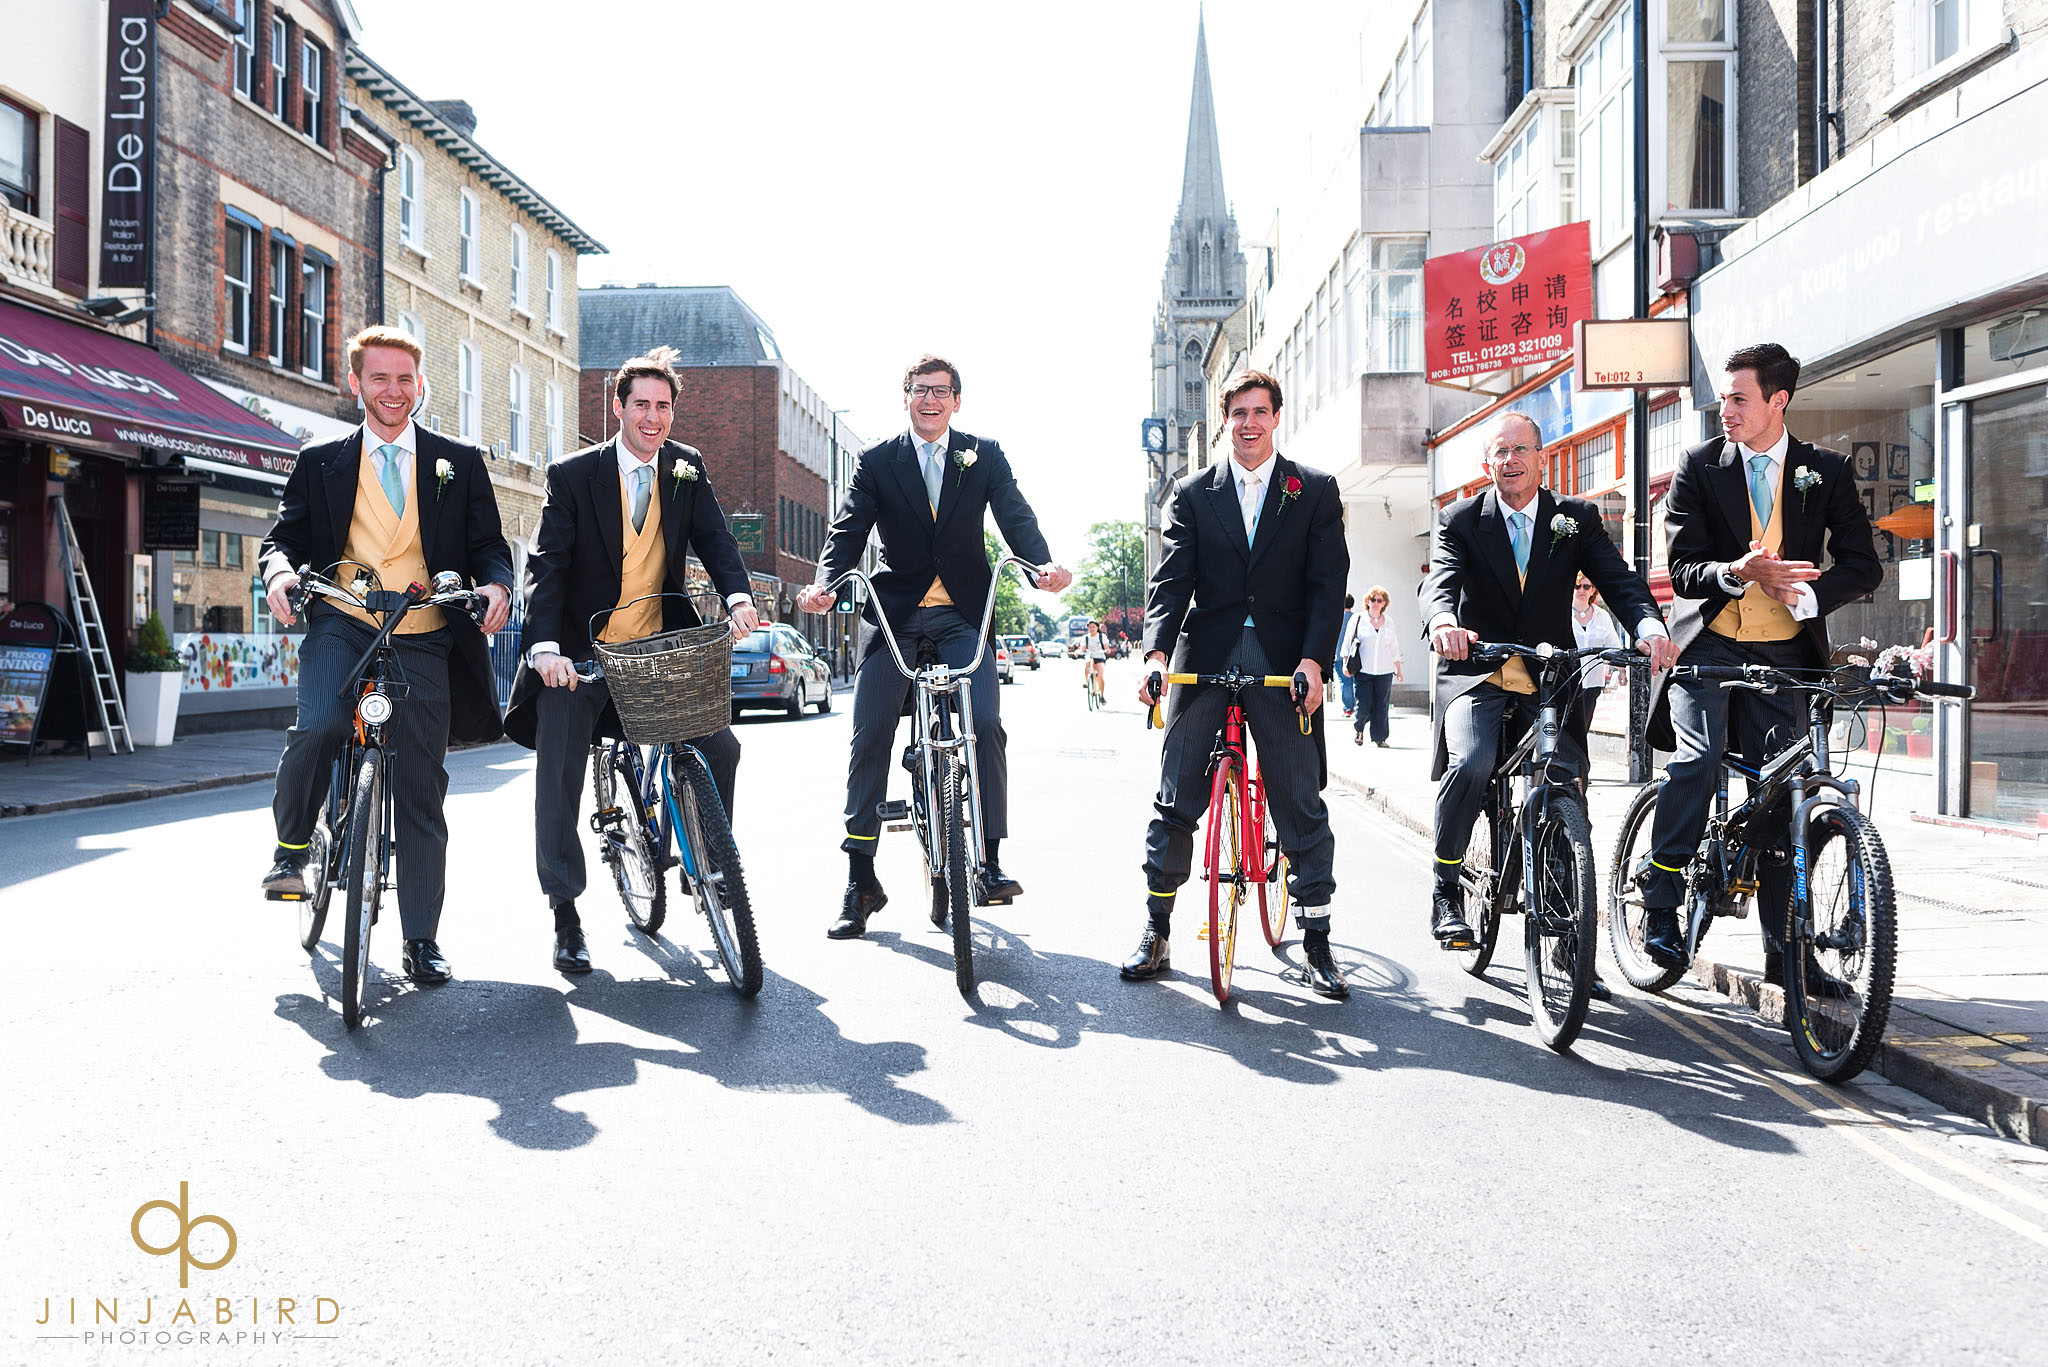 groom with ushers on bikes cambridge